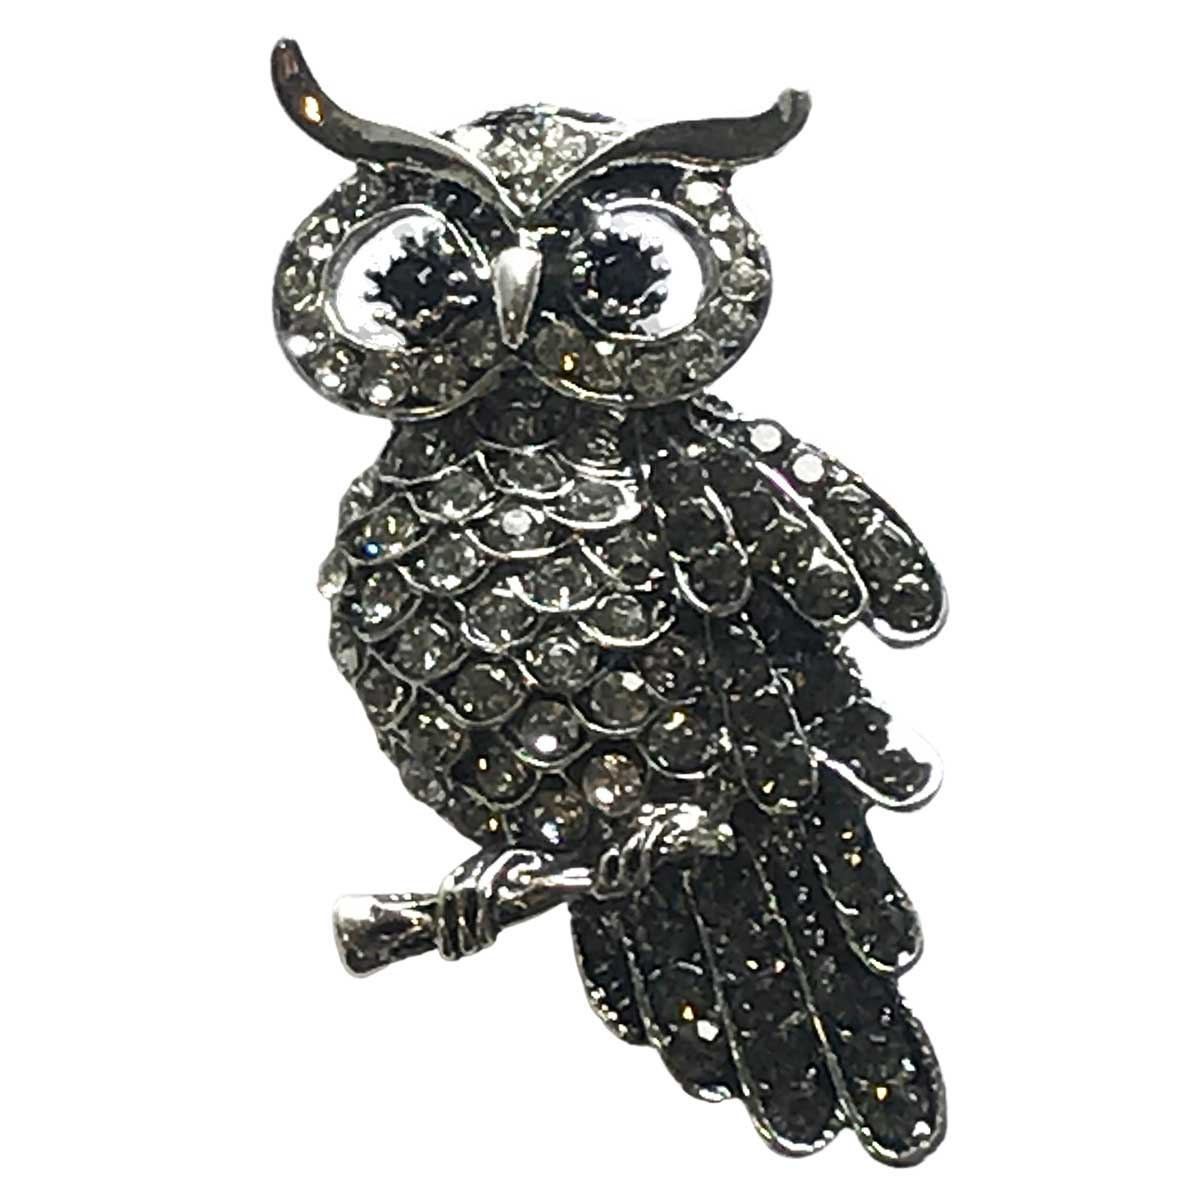 Magnetic Brooches - Artful Design - Plain Back - #008 Owl on a Branch Magnetic Brooch